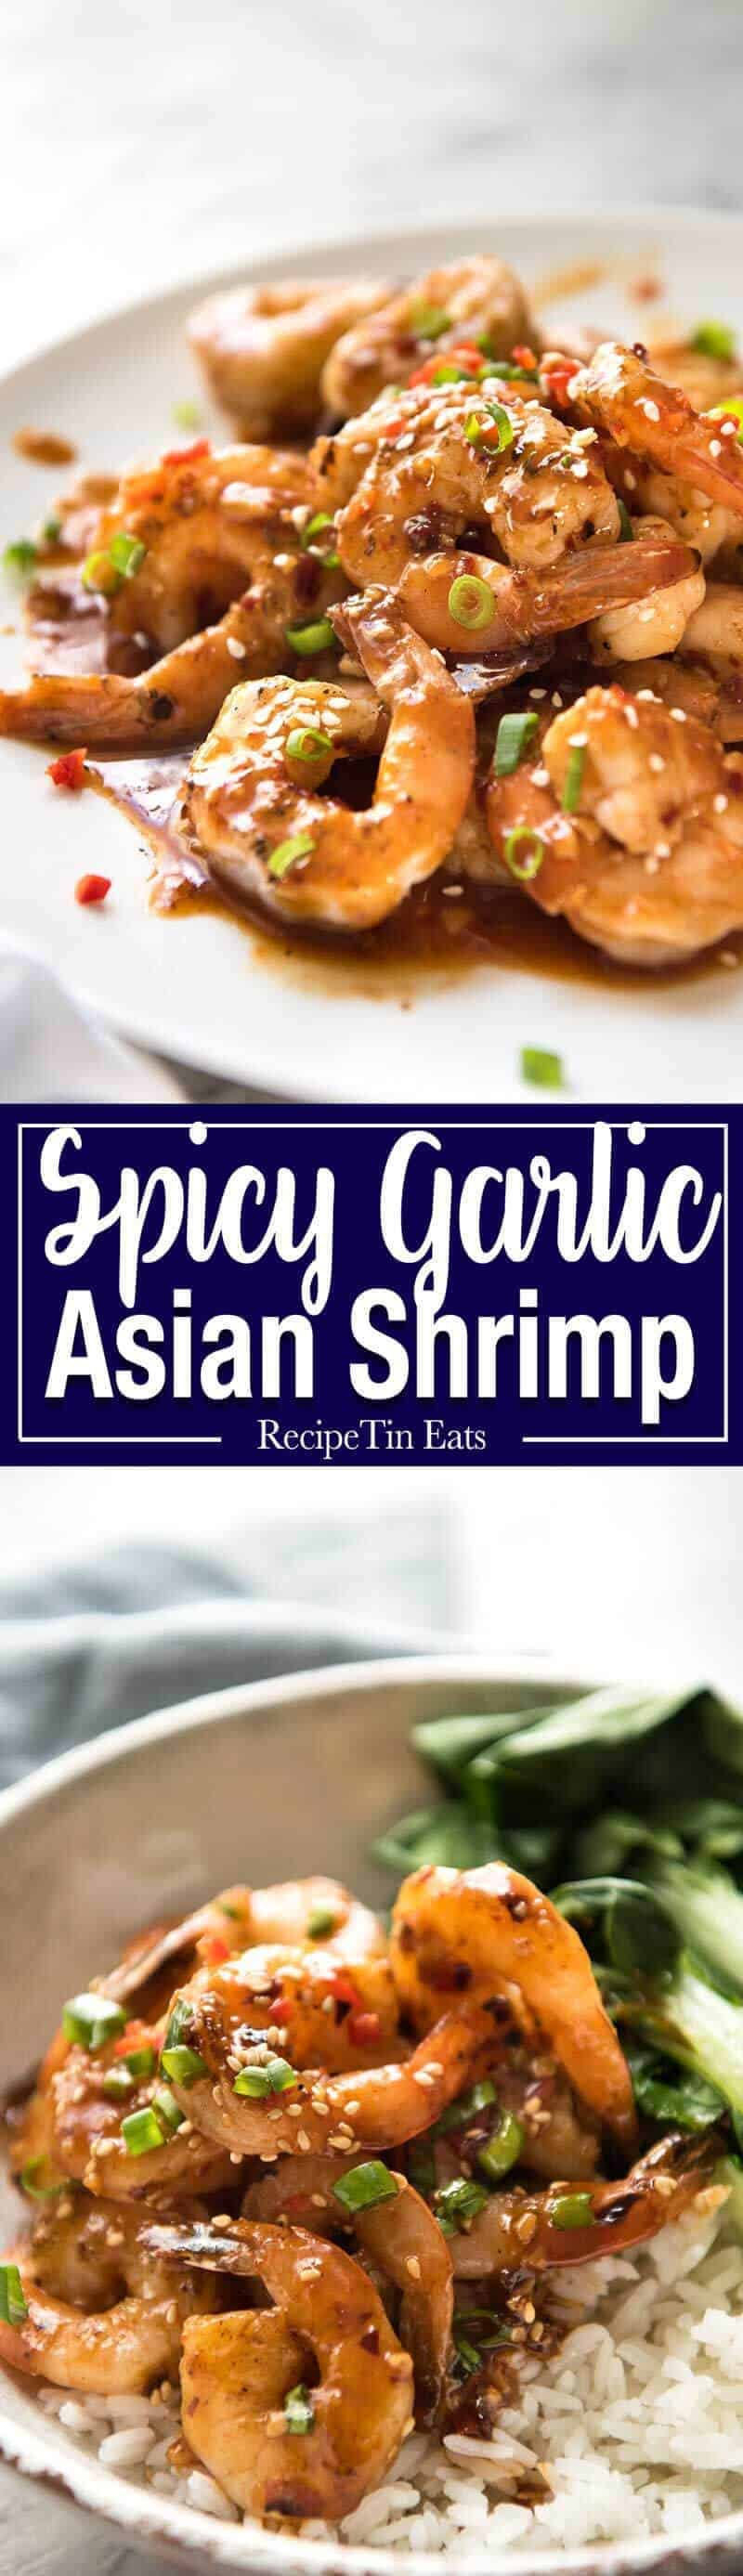 Asian Chilli Garlic Prawns - Juicy prawns in a sweet, sticky, spicy, garlicky sauce. Dinner on the table in 10 minutes! recipetineats.com